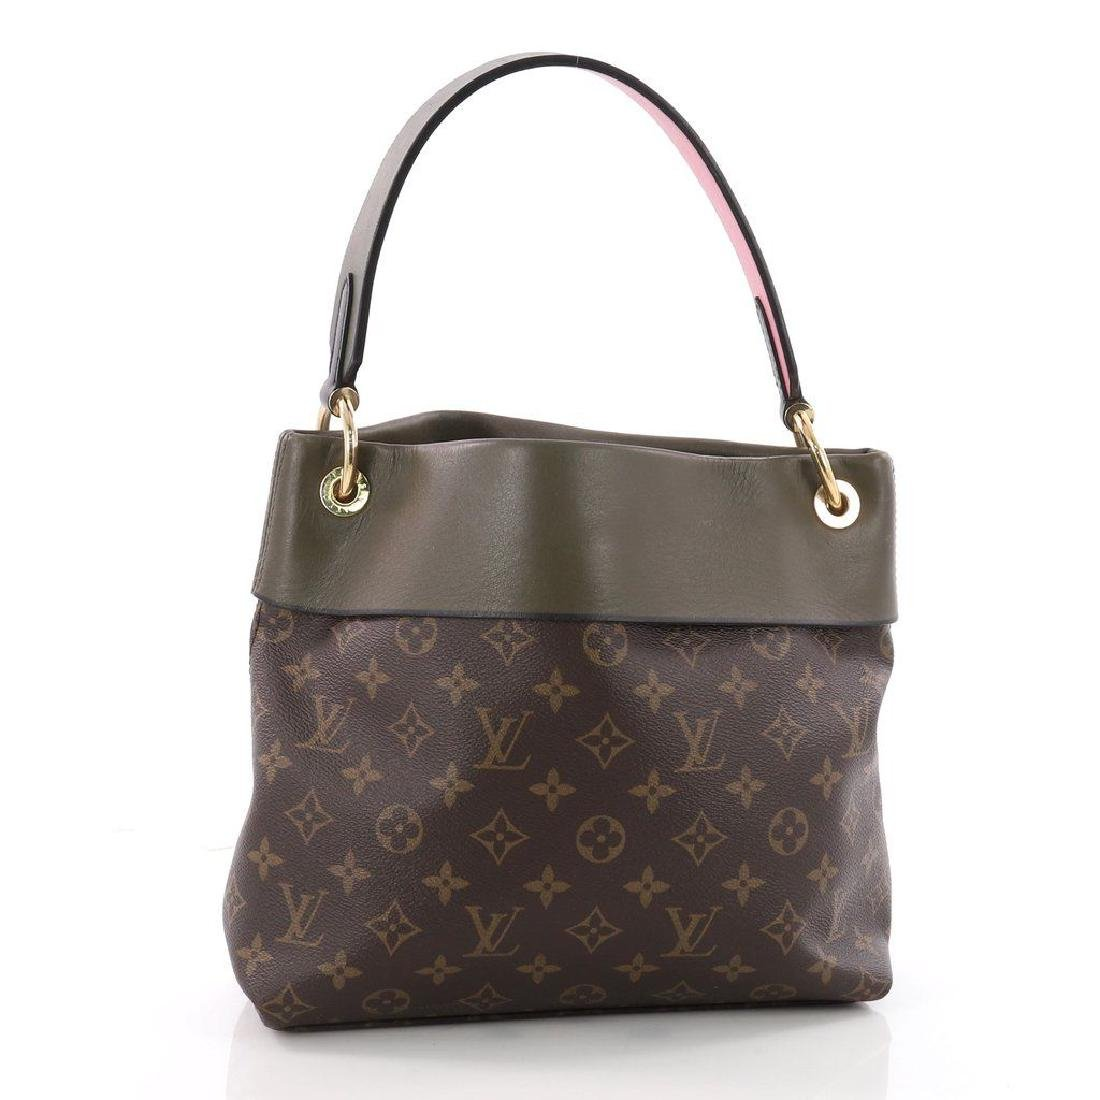 Louis Vuitton Tuileries Besace Bag with Strap in Olive - 4